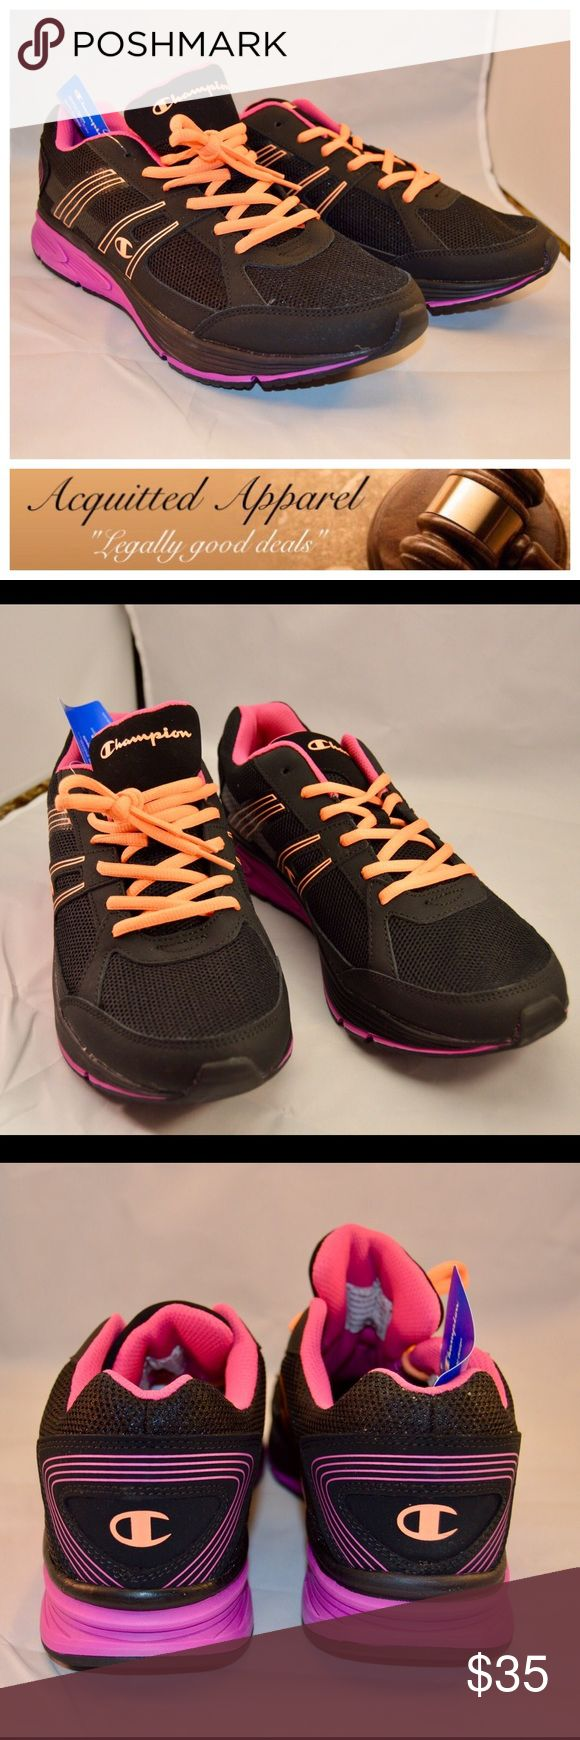 NWT Champion Black And Pink Neon Sneakers Perfect for looking cute while working out. These are super comfortable sneakers. Brand new in box with tags. Size 13 Champion Shoes Sneakers